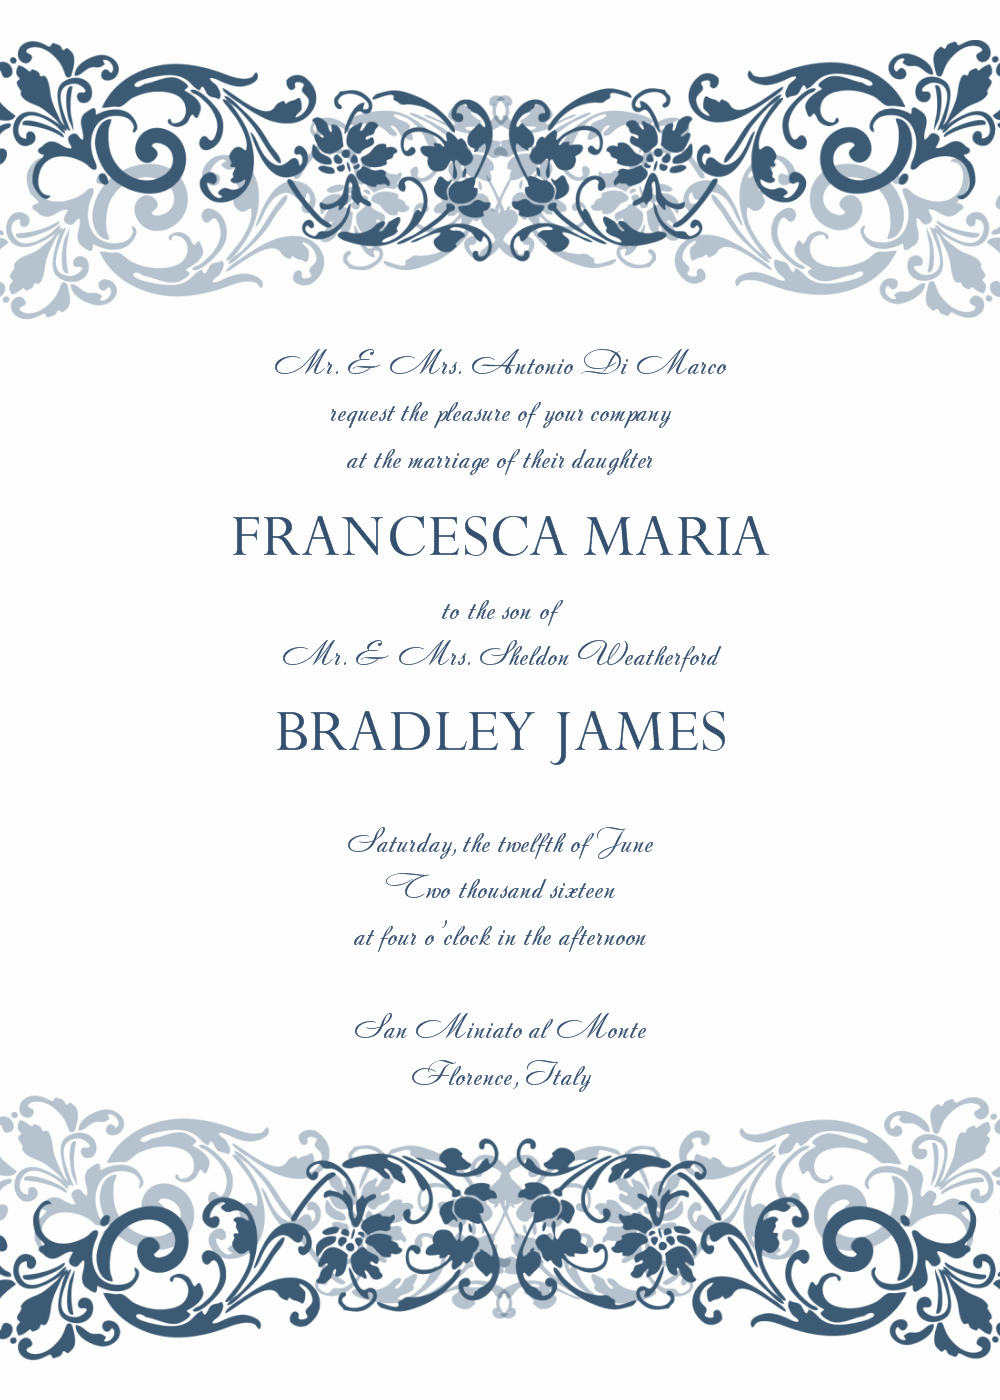 Wedding Invitation Template Word New 8 Free Wedding Invitation Templates Excel Pdf formats